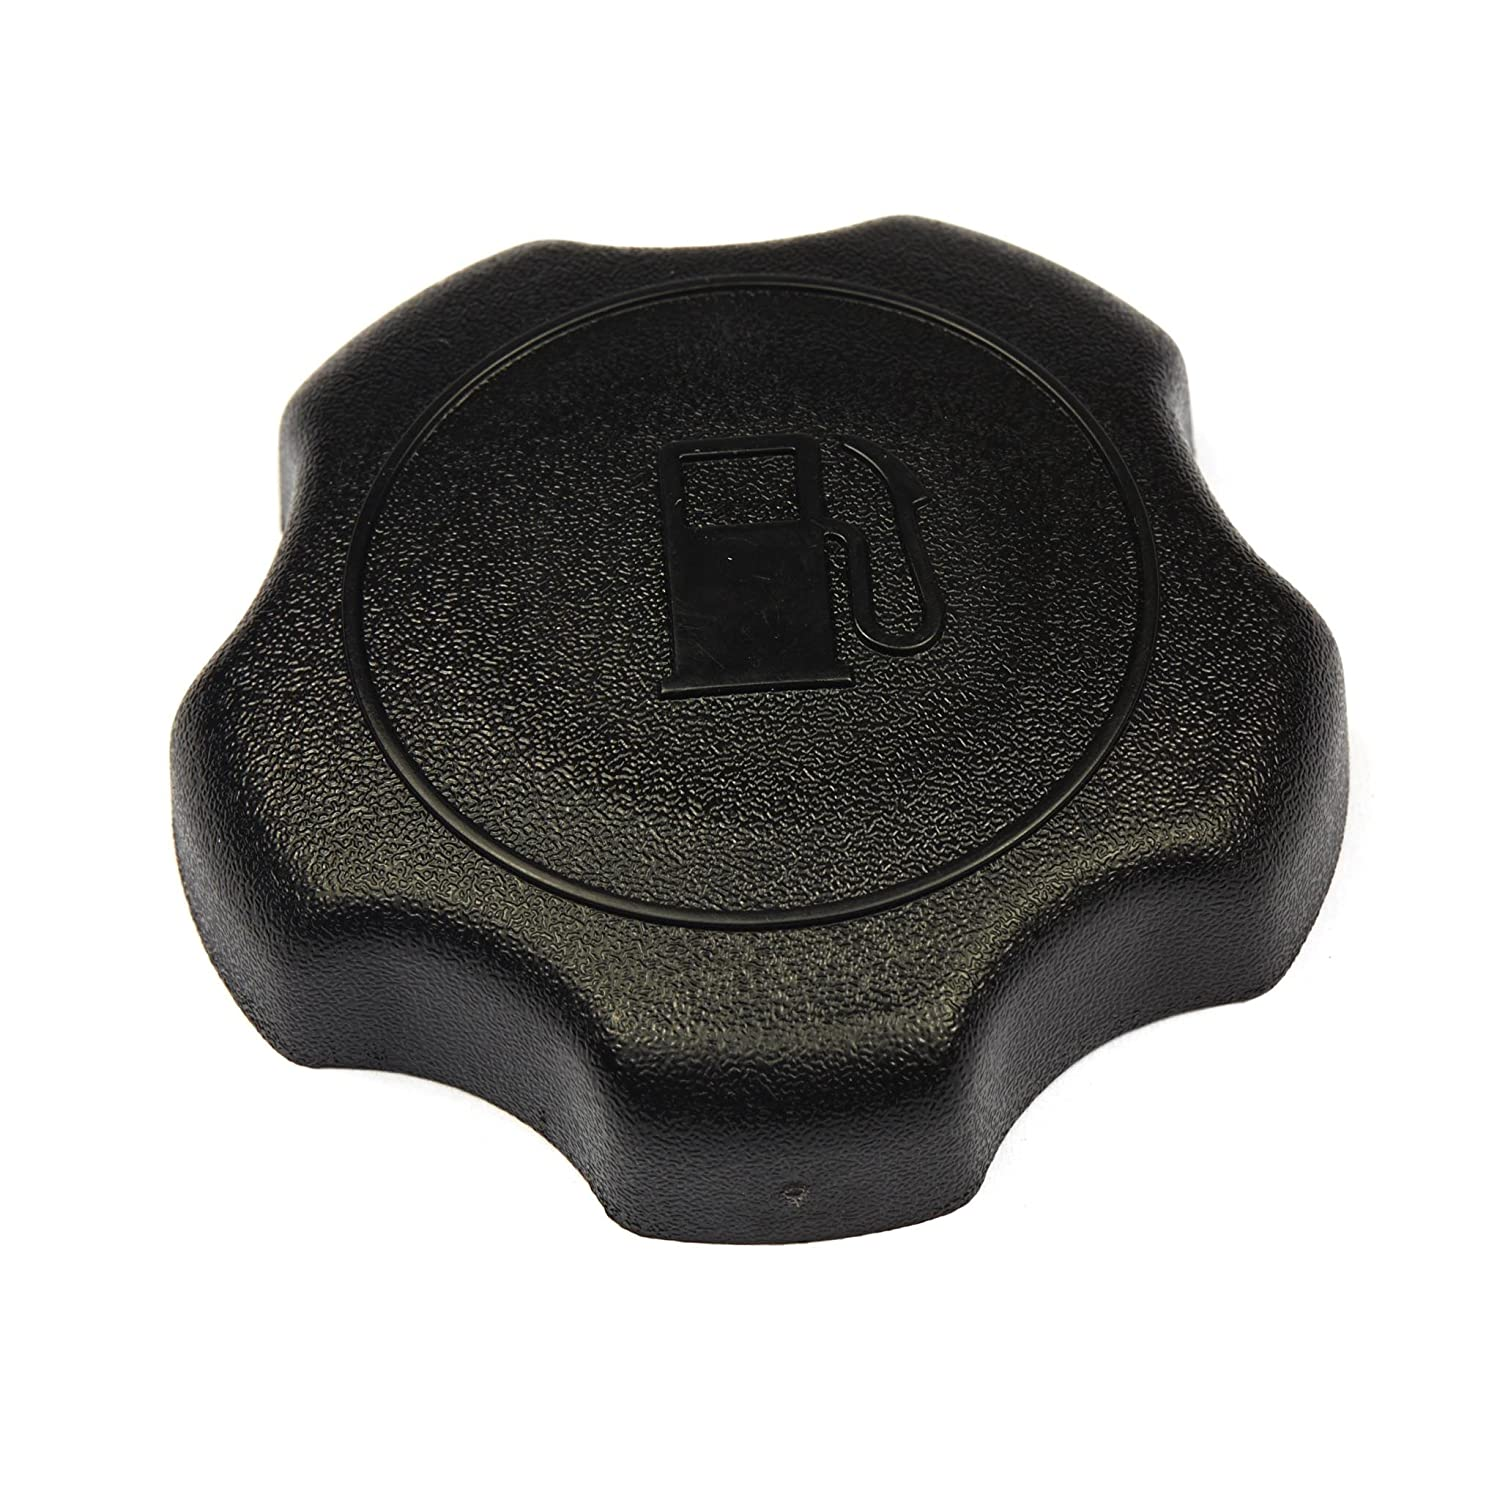 Briggs & Stratton 795027 Fuel Tank Cap For 134400 L-Head engines, 7-12.5 HP Vertical Engines